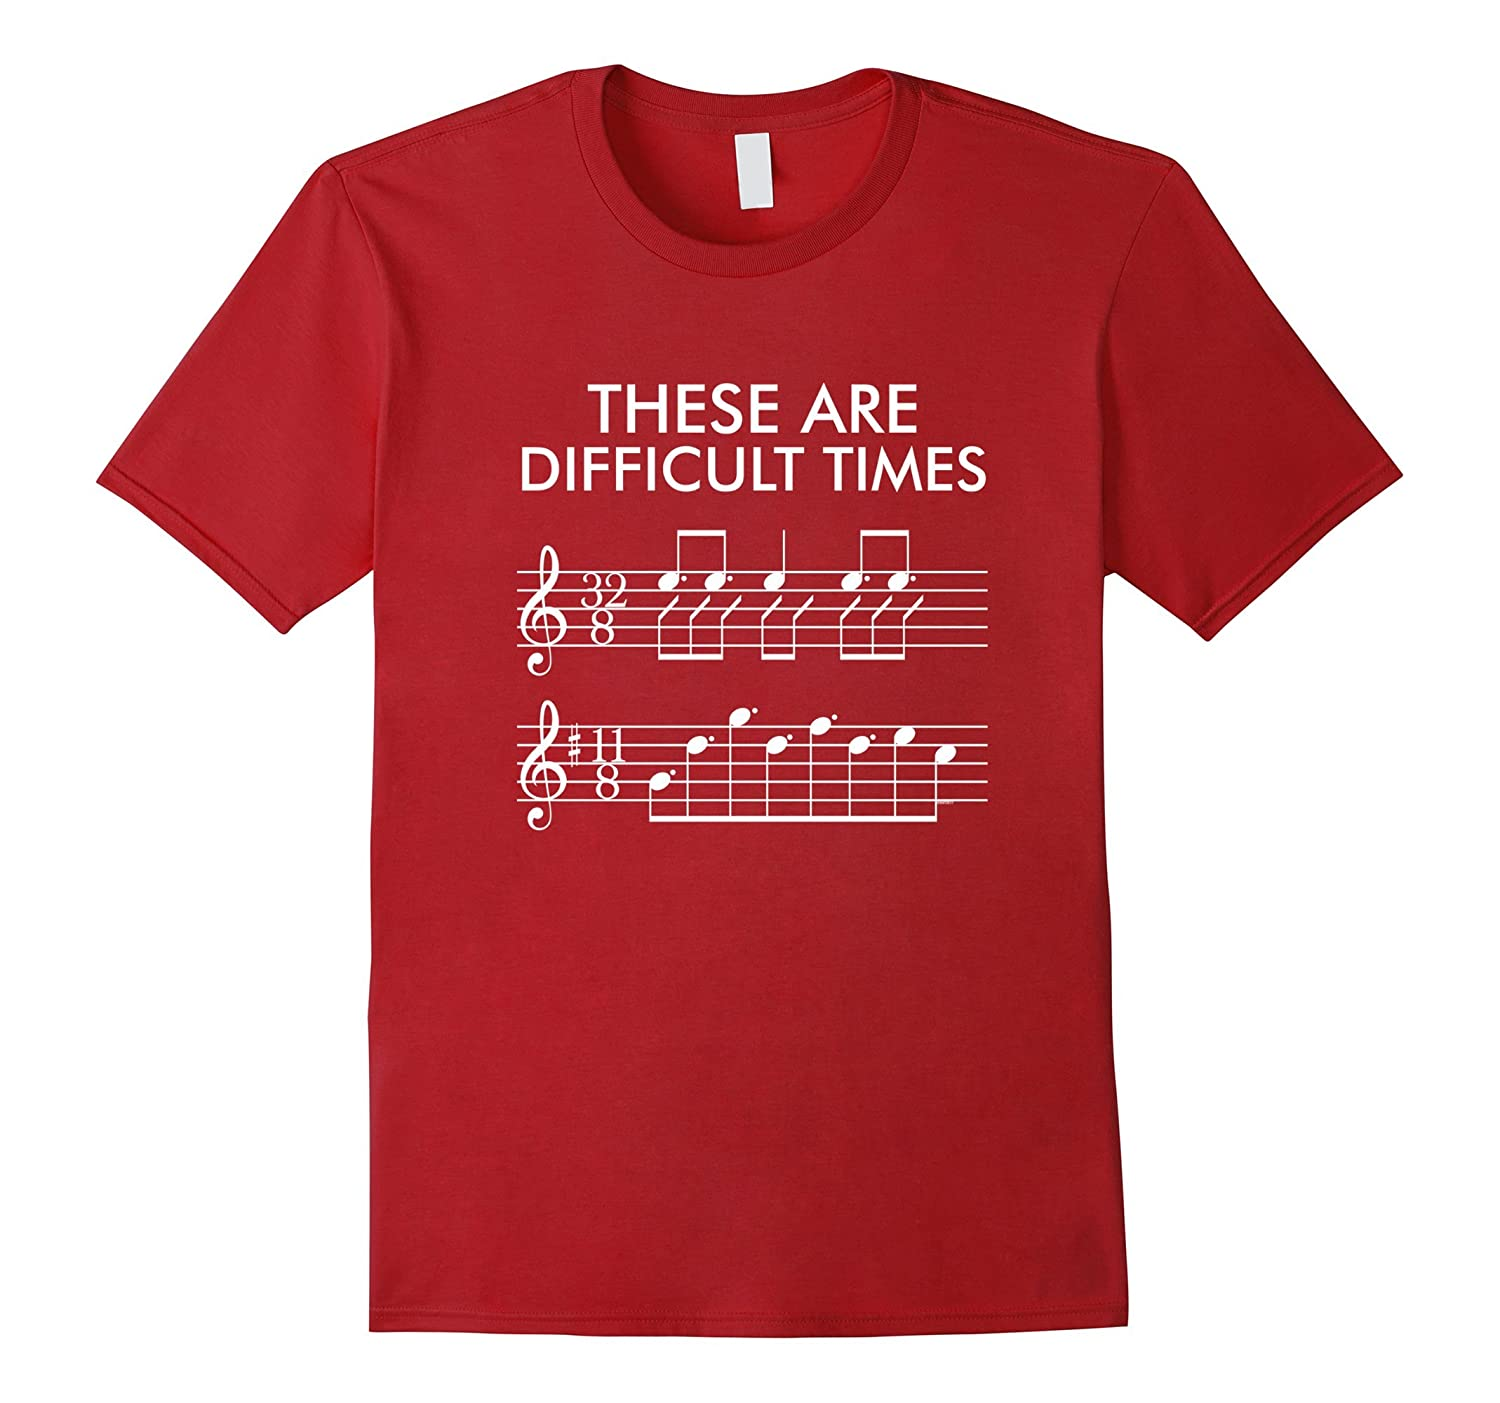 These Are Difficult Times - Funny Music T-shirt-T-Shirt